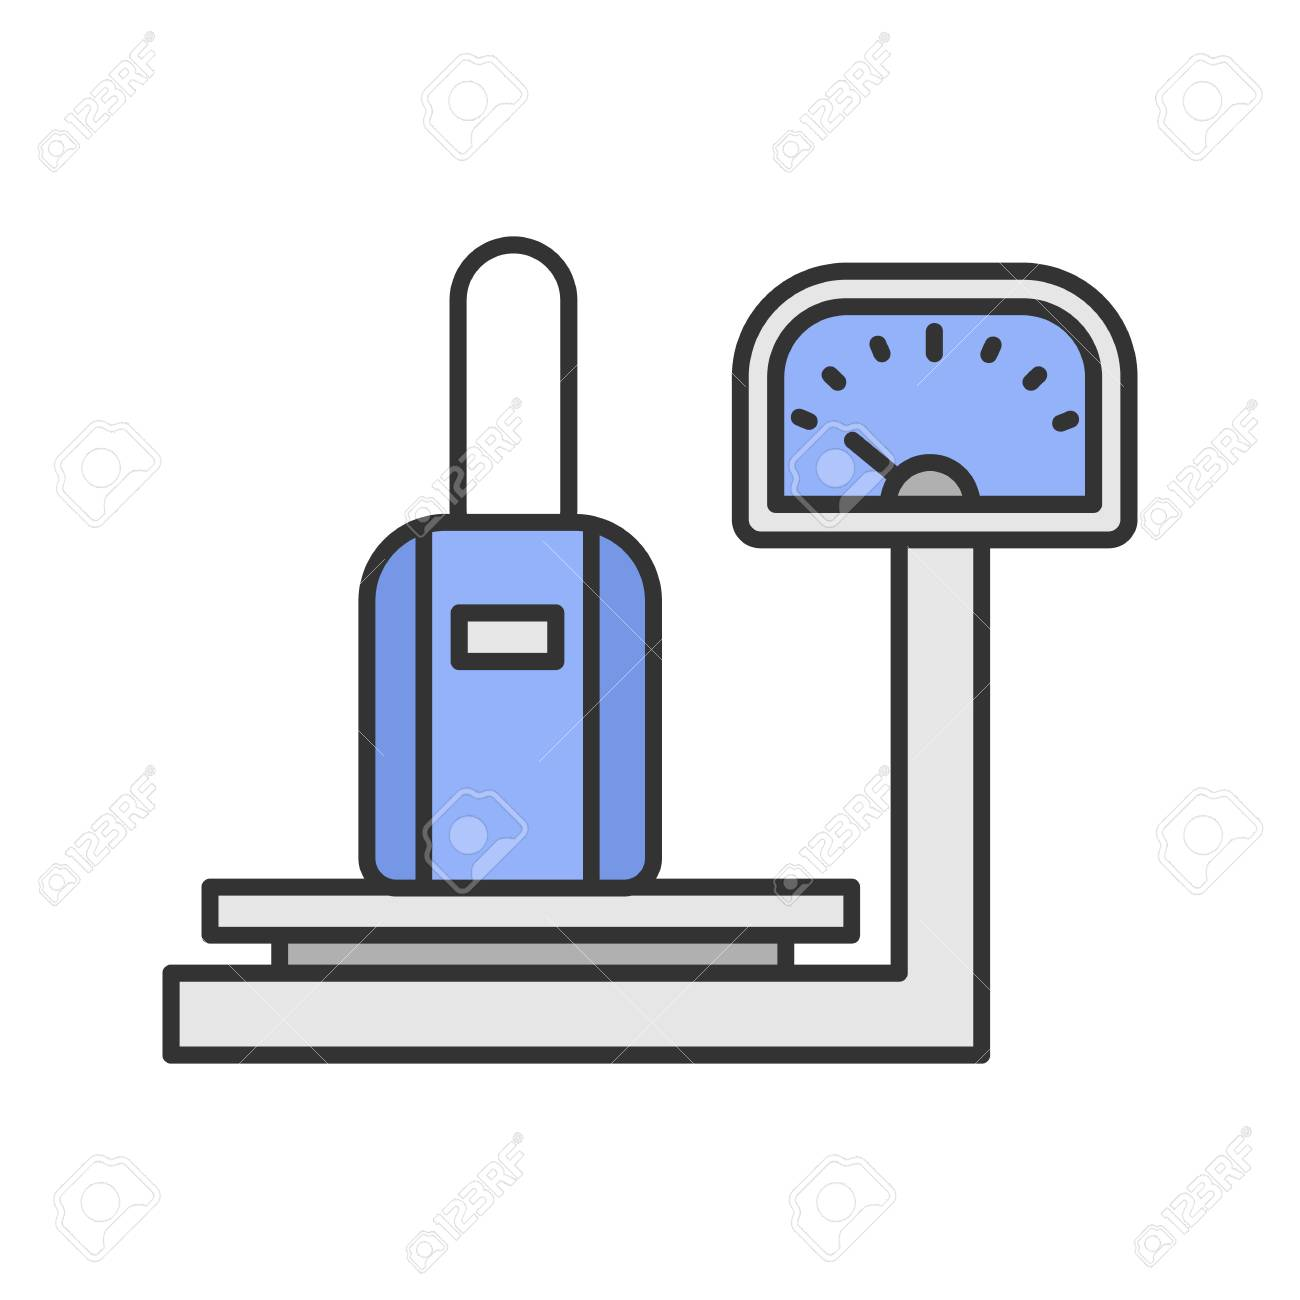 Baggage scales color icon. Luggage weight checking. Isolated vector illustration - 104263986